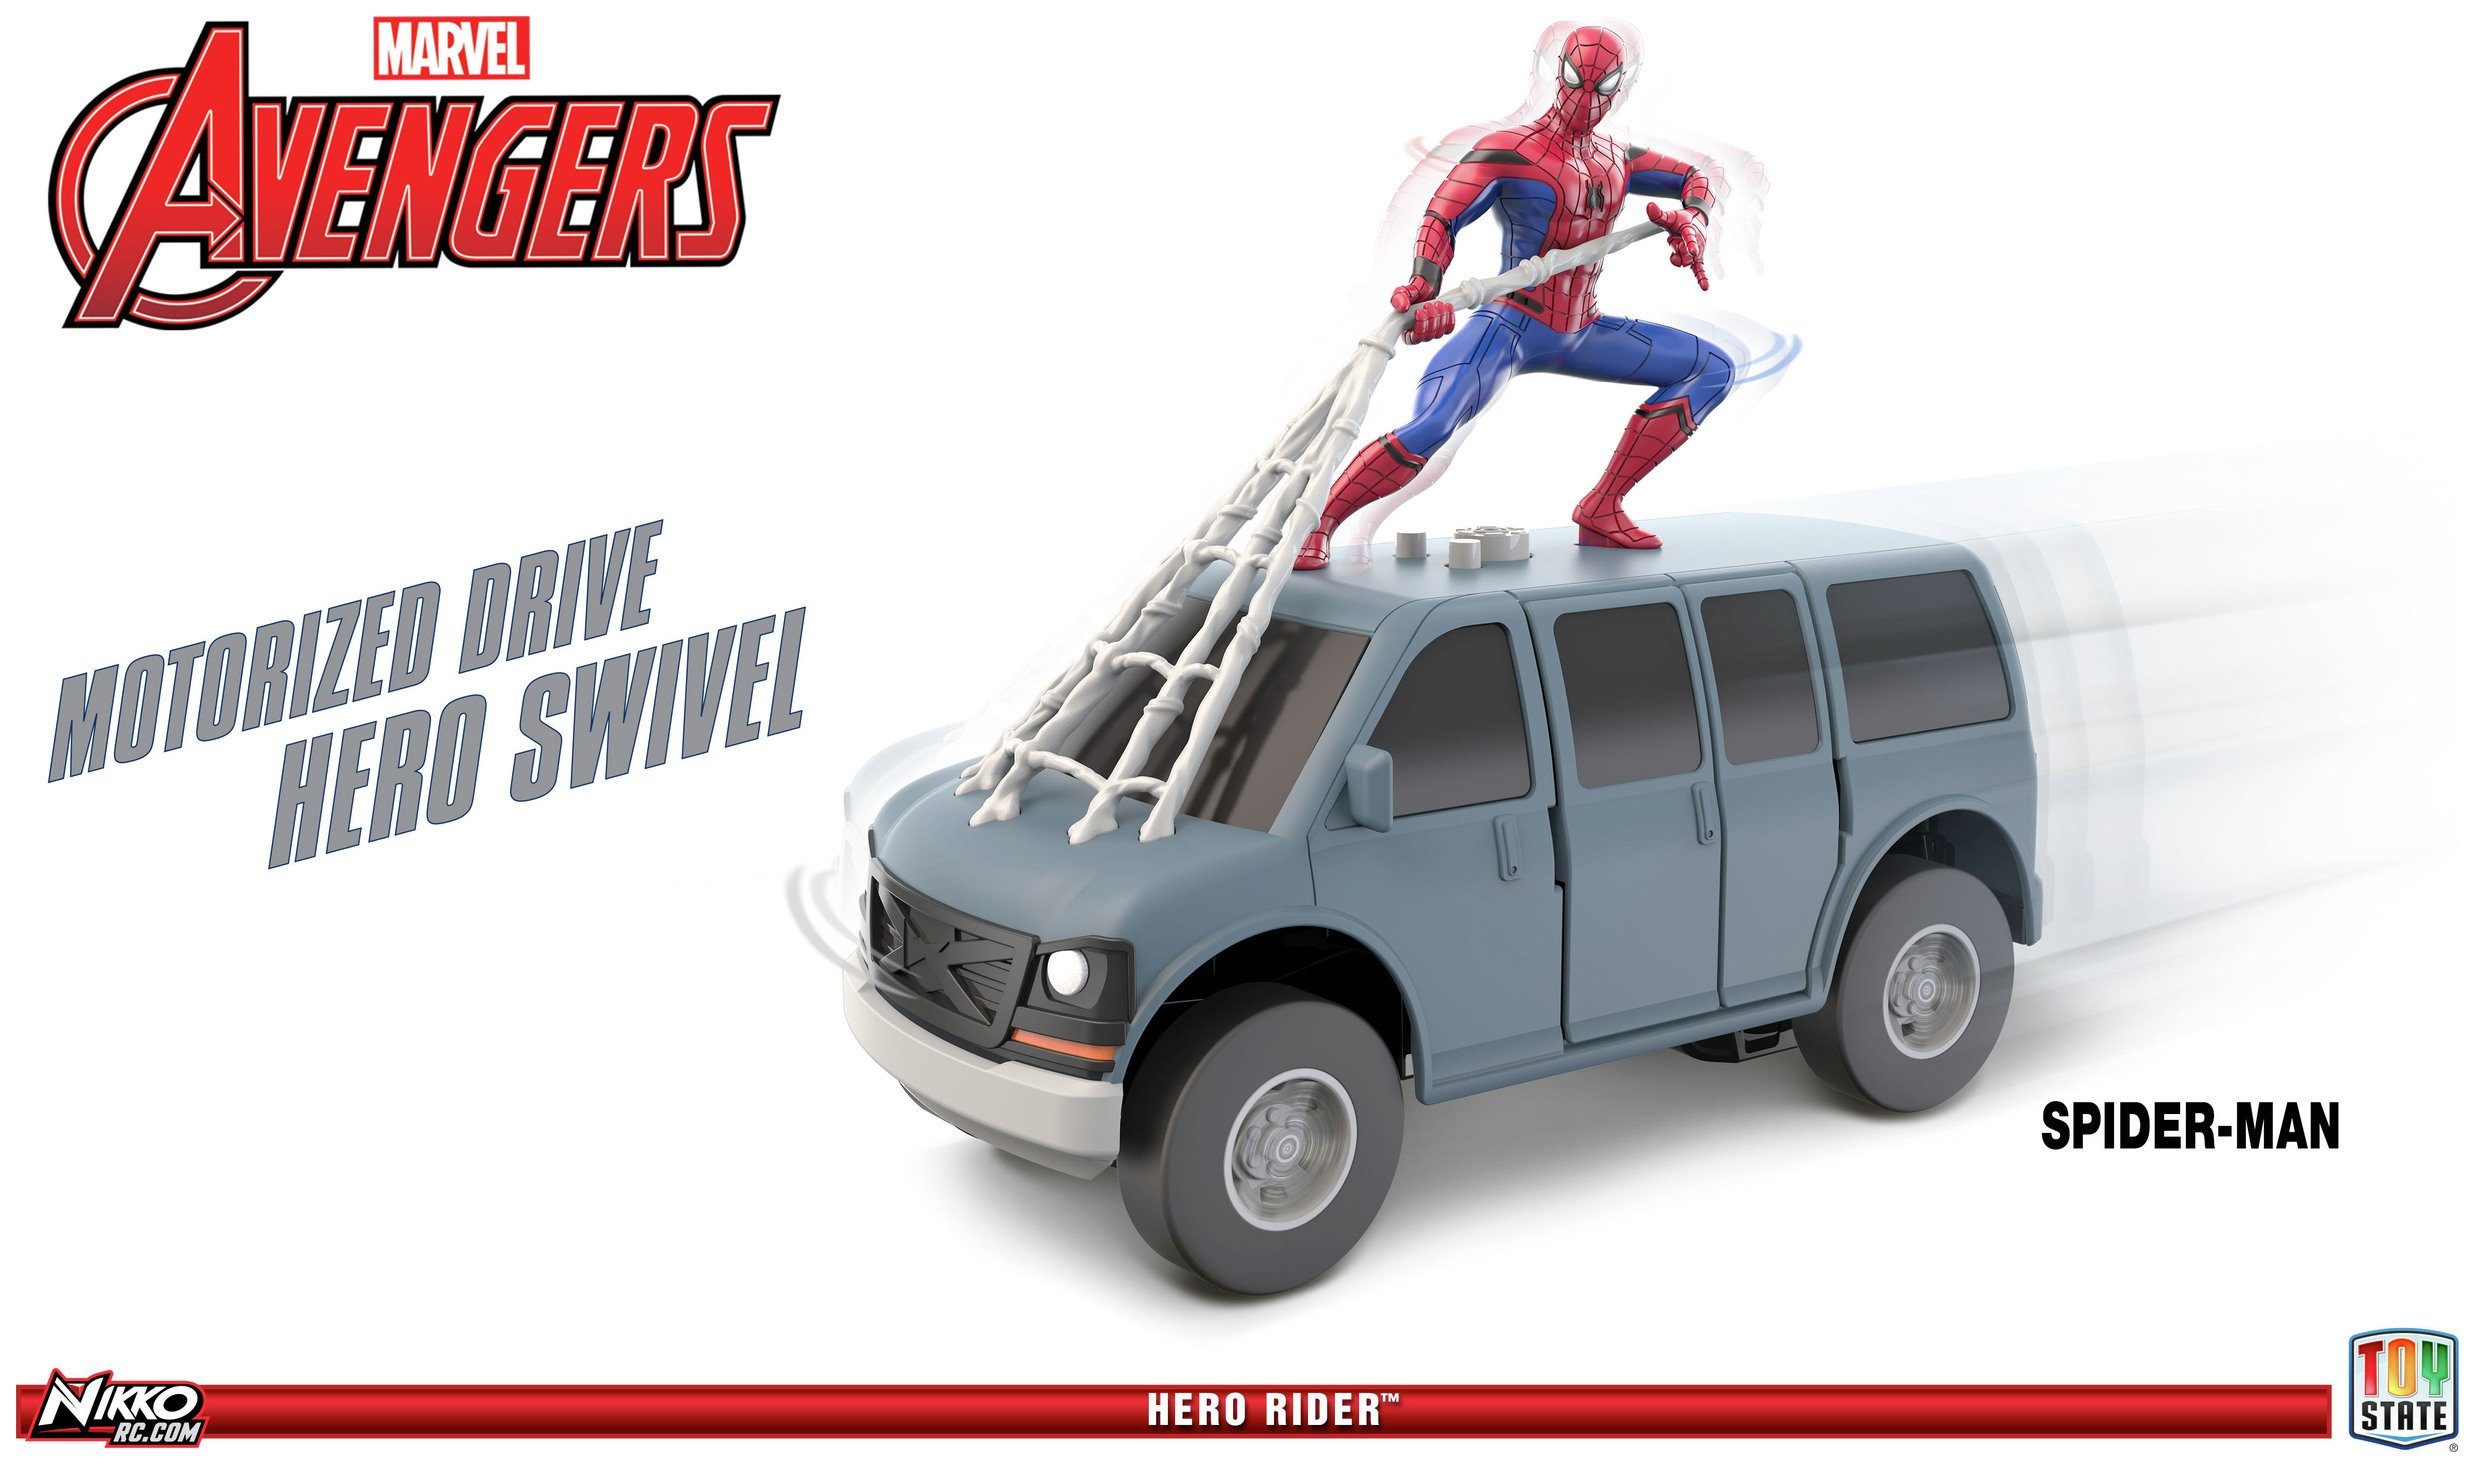 Marvel Spider-Man Hero Rider Van.